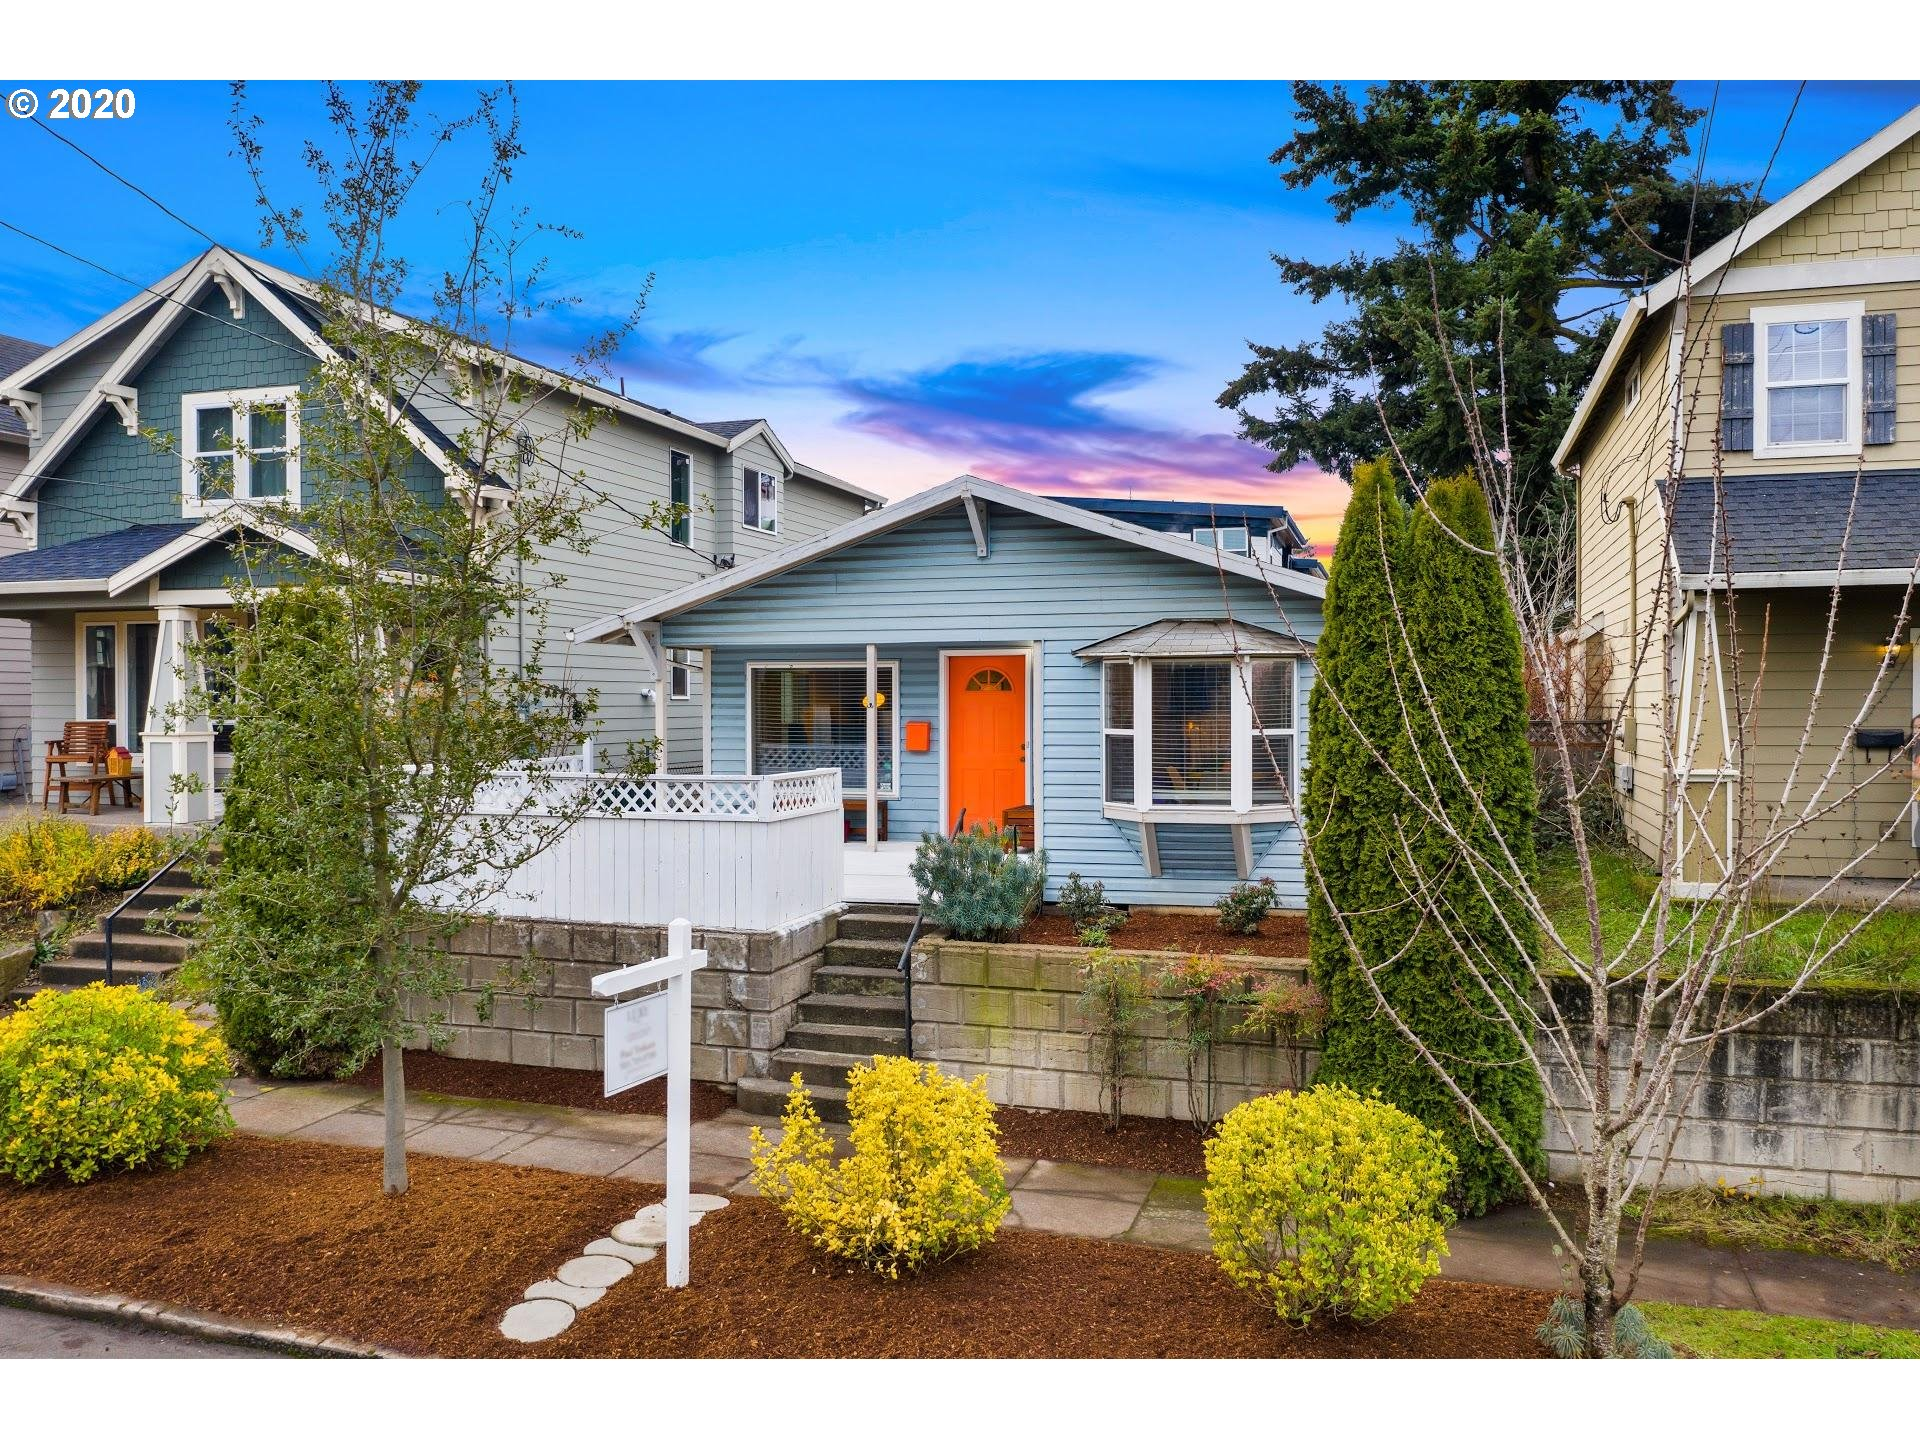 Turn key Arbor Lodge Bungalow. Incredible location; 5 min walk to New Seasons/Peninsula Park/MAX line! 5 mins to Adidas, 15 mins to PDX, freeway access. Home offers 3 beds/ 2.5 baths, 95% furnace/AC, hardwood floors, family room in lower (or 4th bed w/ half bath), skylights, landscaped/fenced back yard + LARGE detached garage/shop. Master suite on Main level w/ a step in shower! Lower electric bill w/ Solar! See 3D tour/Floorplan. 91 BIKE SCORE! RM3 Zoned for development! [Home Energy Score = 7. HES Report at https://rpt.greenbuildingregistry.com/hes/OR10025281]